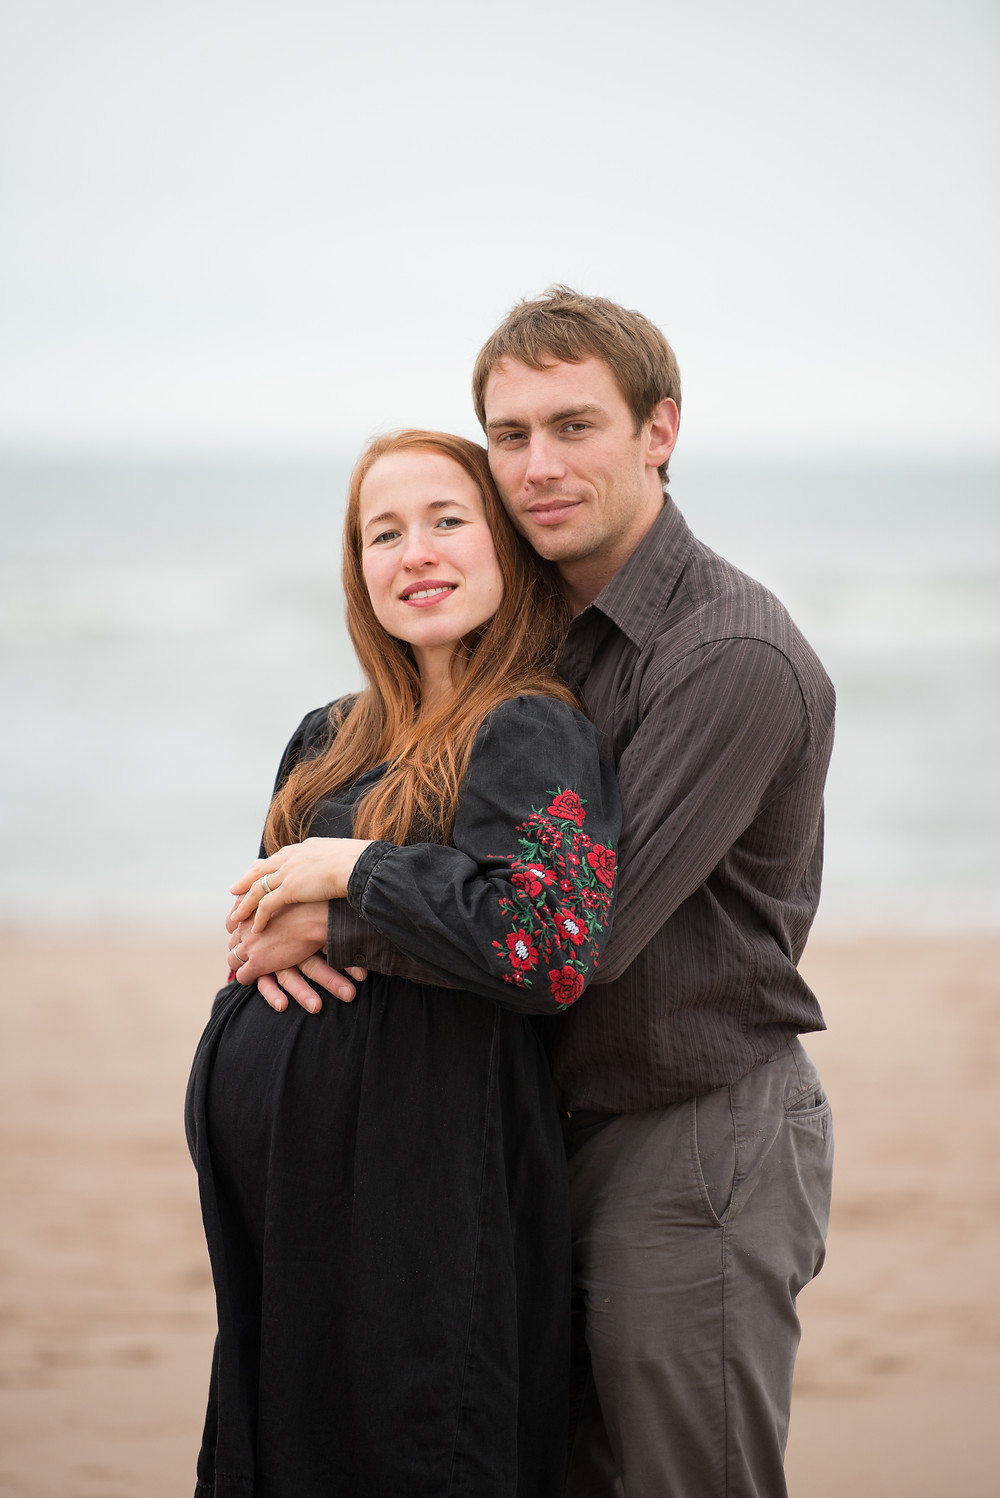 best-aberdeen-family-photographer-natural-light-lifestyle-st-cyrus-montrose-beach-couple-hugging-maternity-pregnancy-portrait